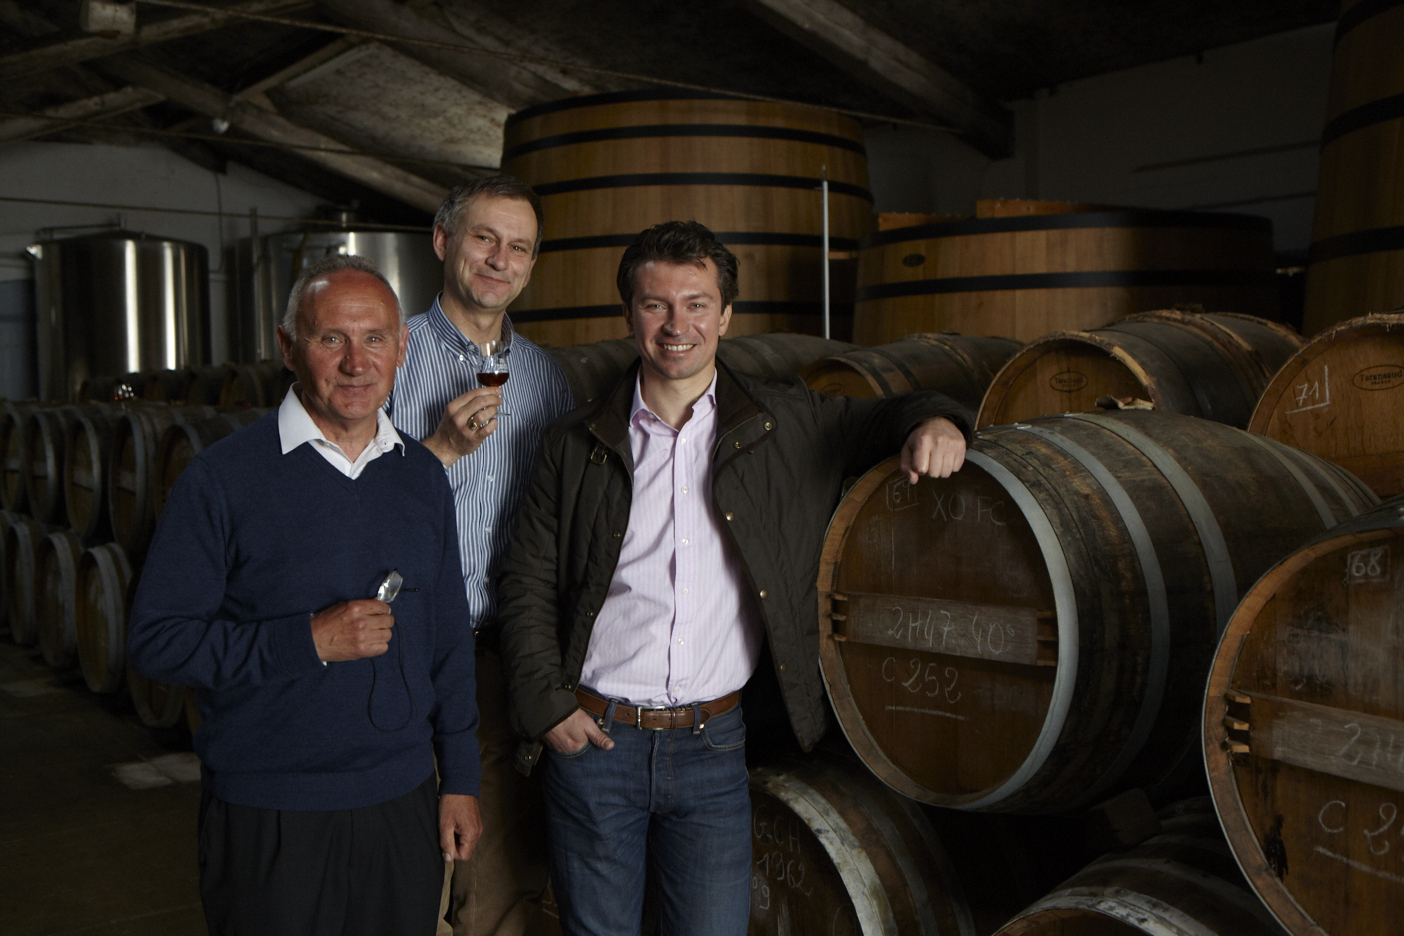 Hervé and his father Christian Bache-Gabrielsen and Master Blender in the cellars